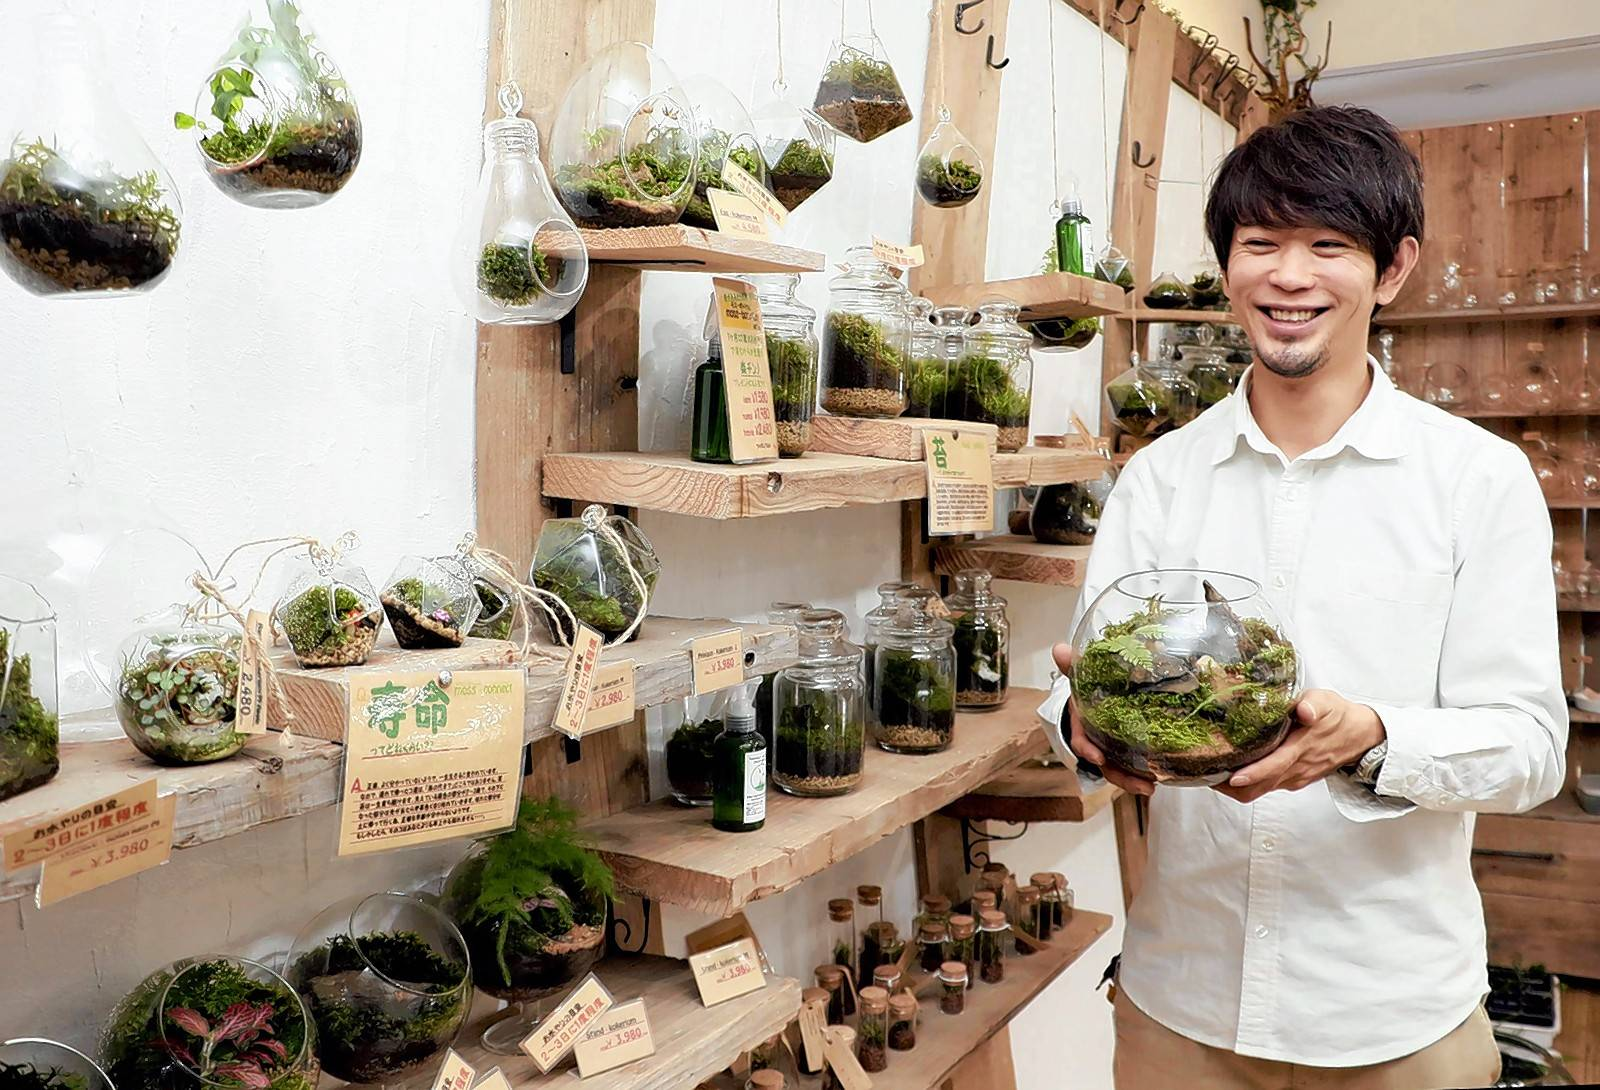 Yutaka Imada, owner of Moss-Connect in Osaka, Japan, sells moss terrariums in his store.